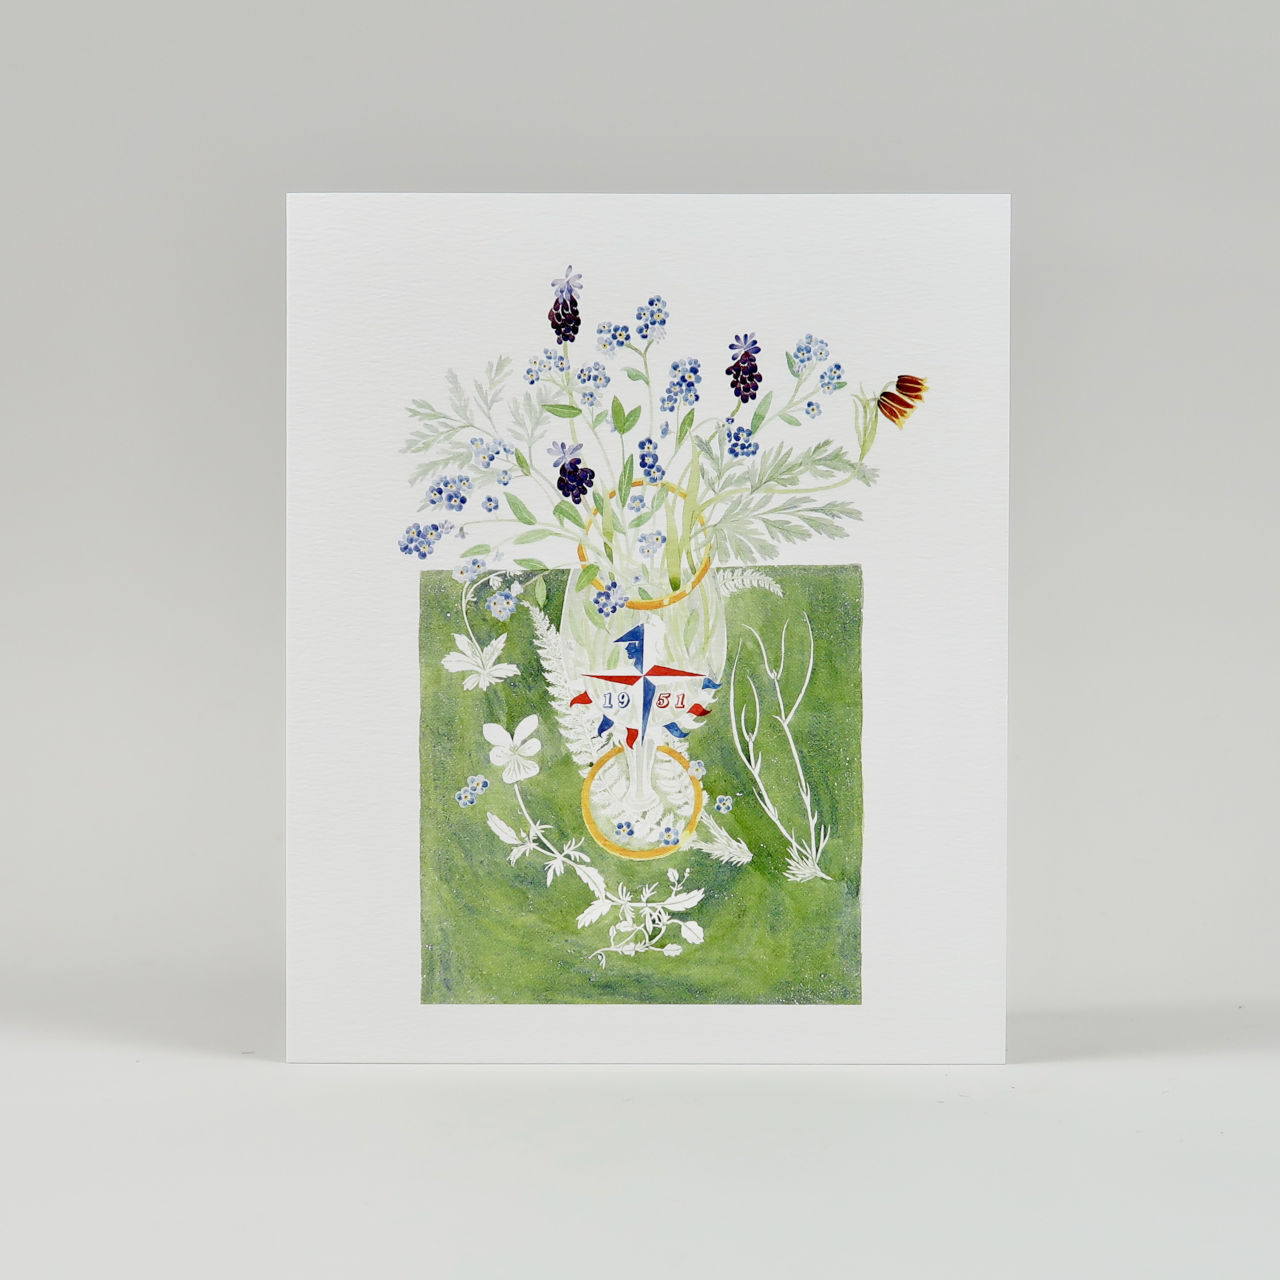 Festival of Britain Glass with Spring Flowers Greetings Card by Angie Lewin